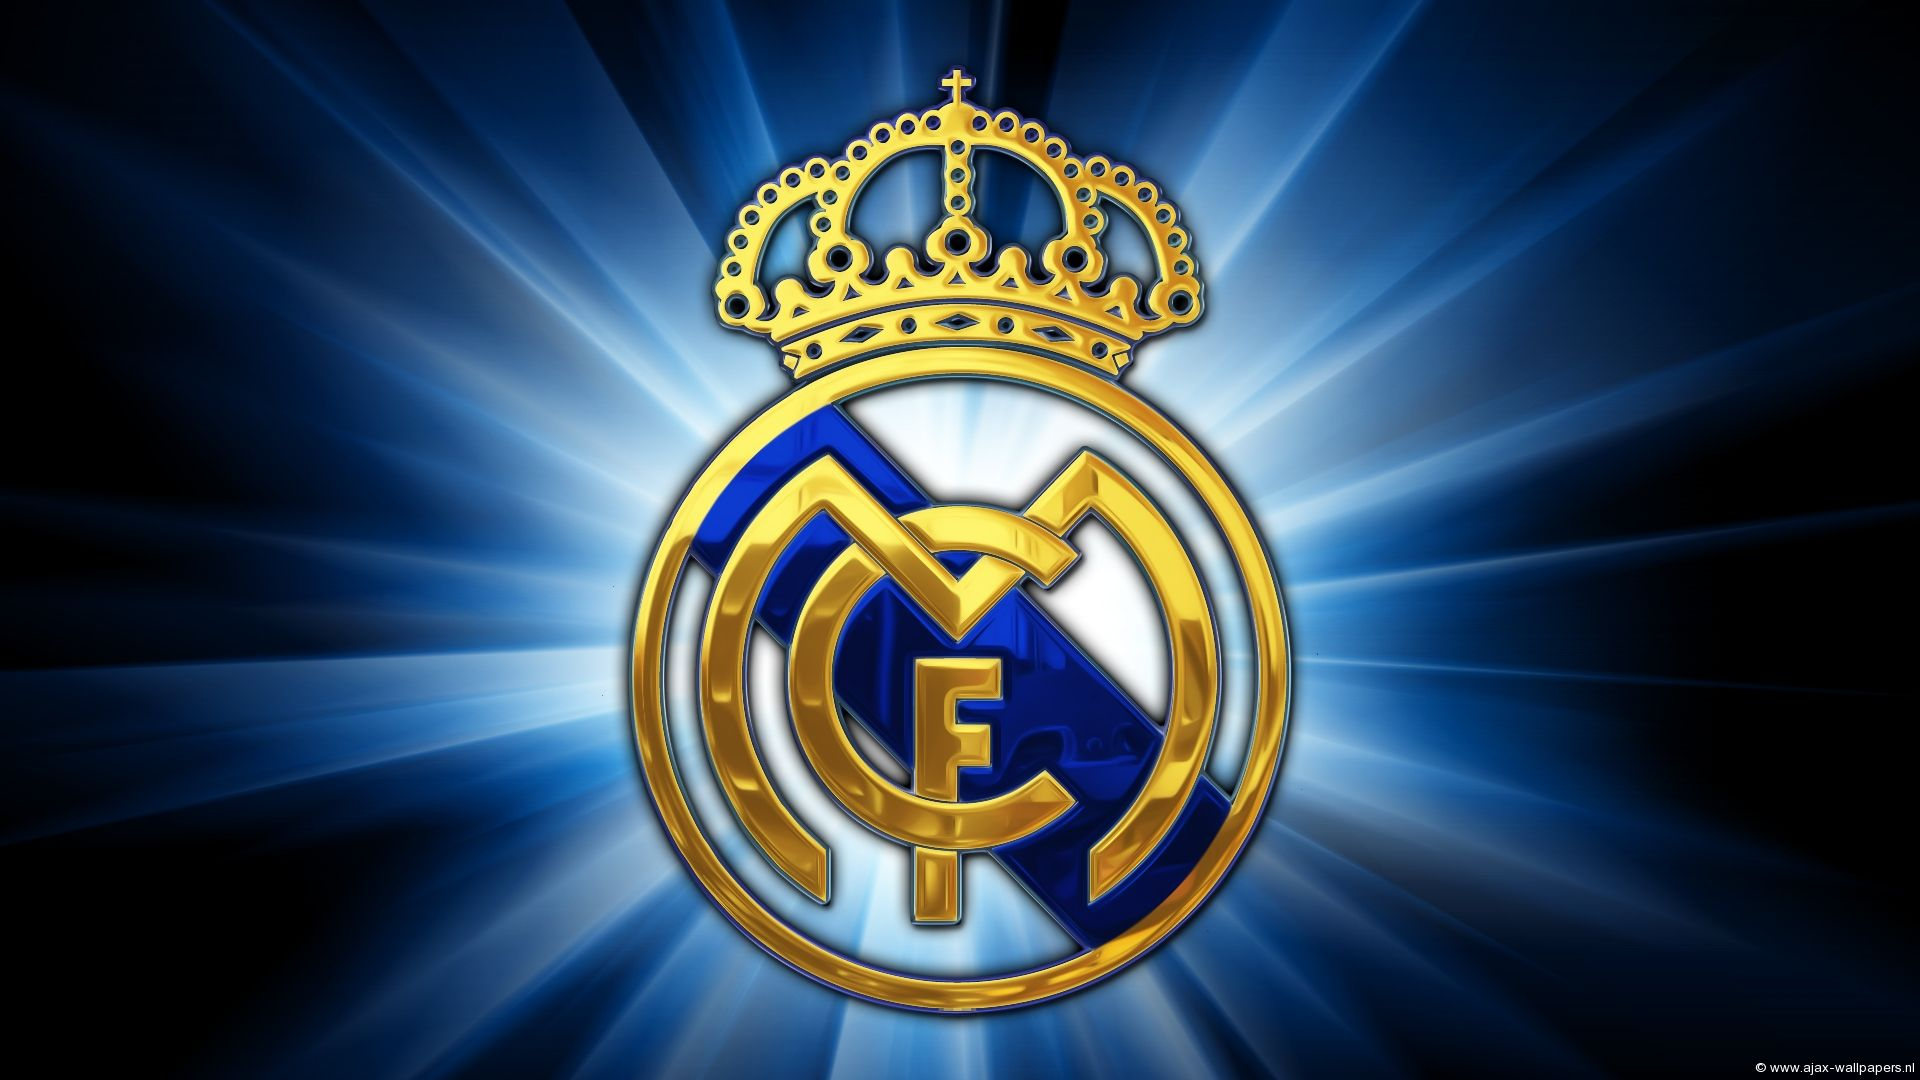 Sports Real Madrid Logo 2013 Wallpaper Hd Real Madrid Hd Passion Real Madrid Wallpapers